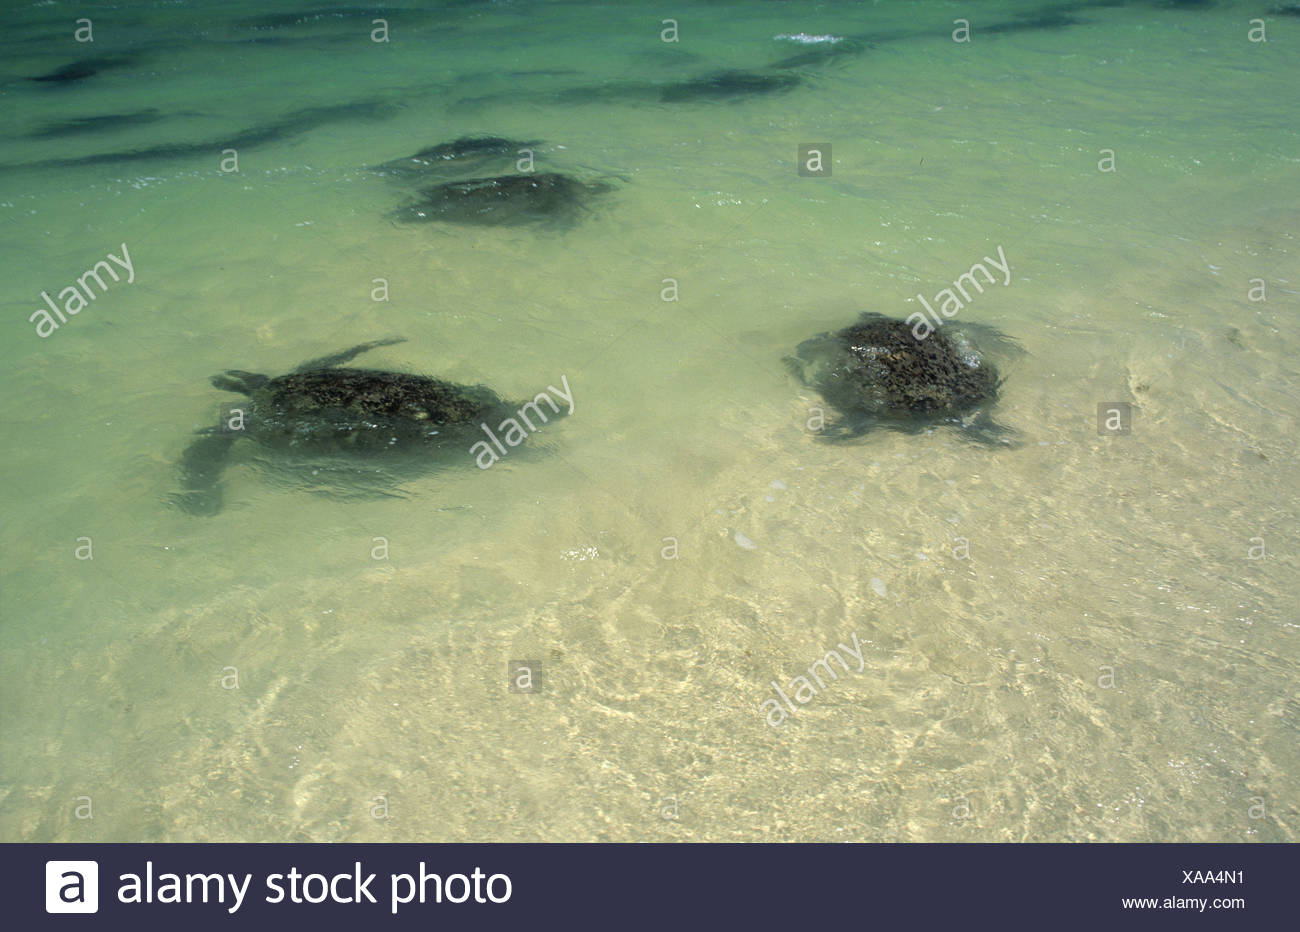 Green turtles swimming in shalow water near a beach at Cape Range National Park, Ningaloo Reef Marine Park - Stock Image